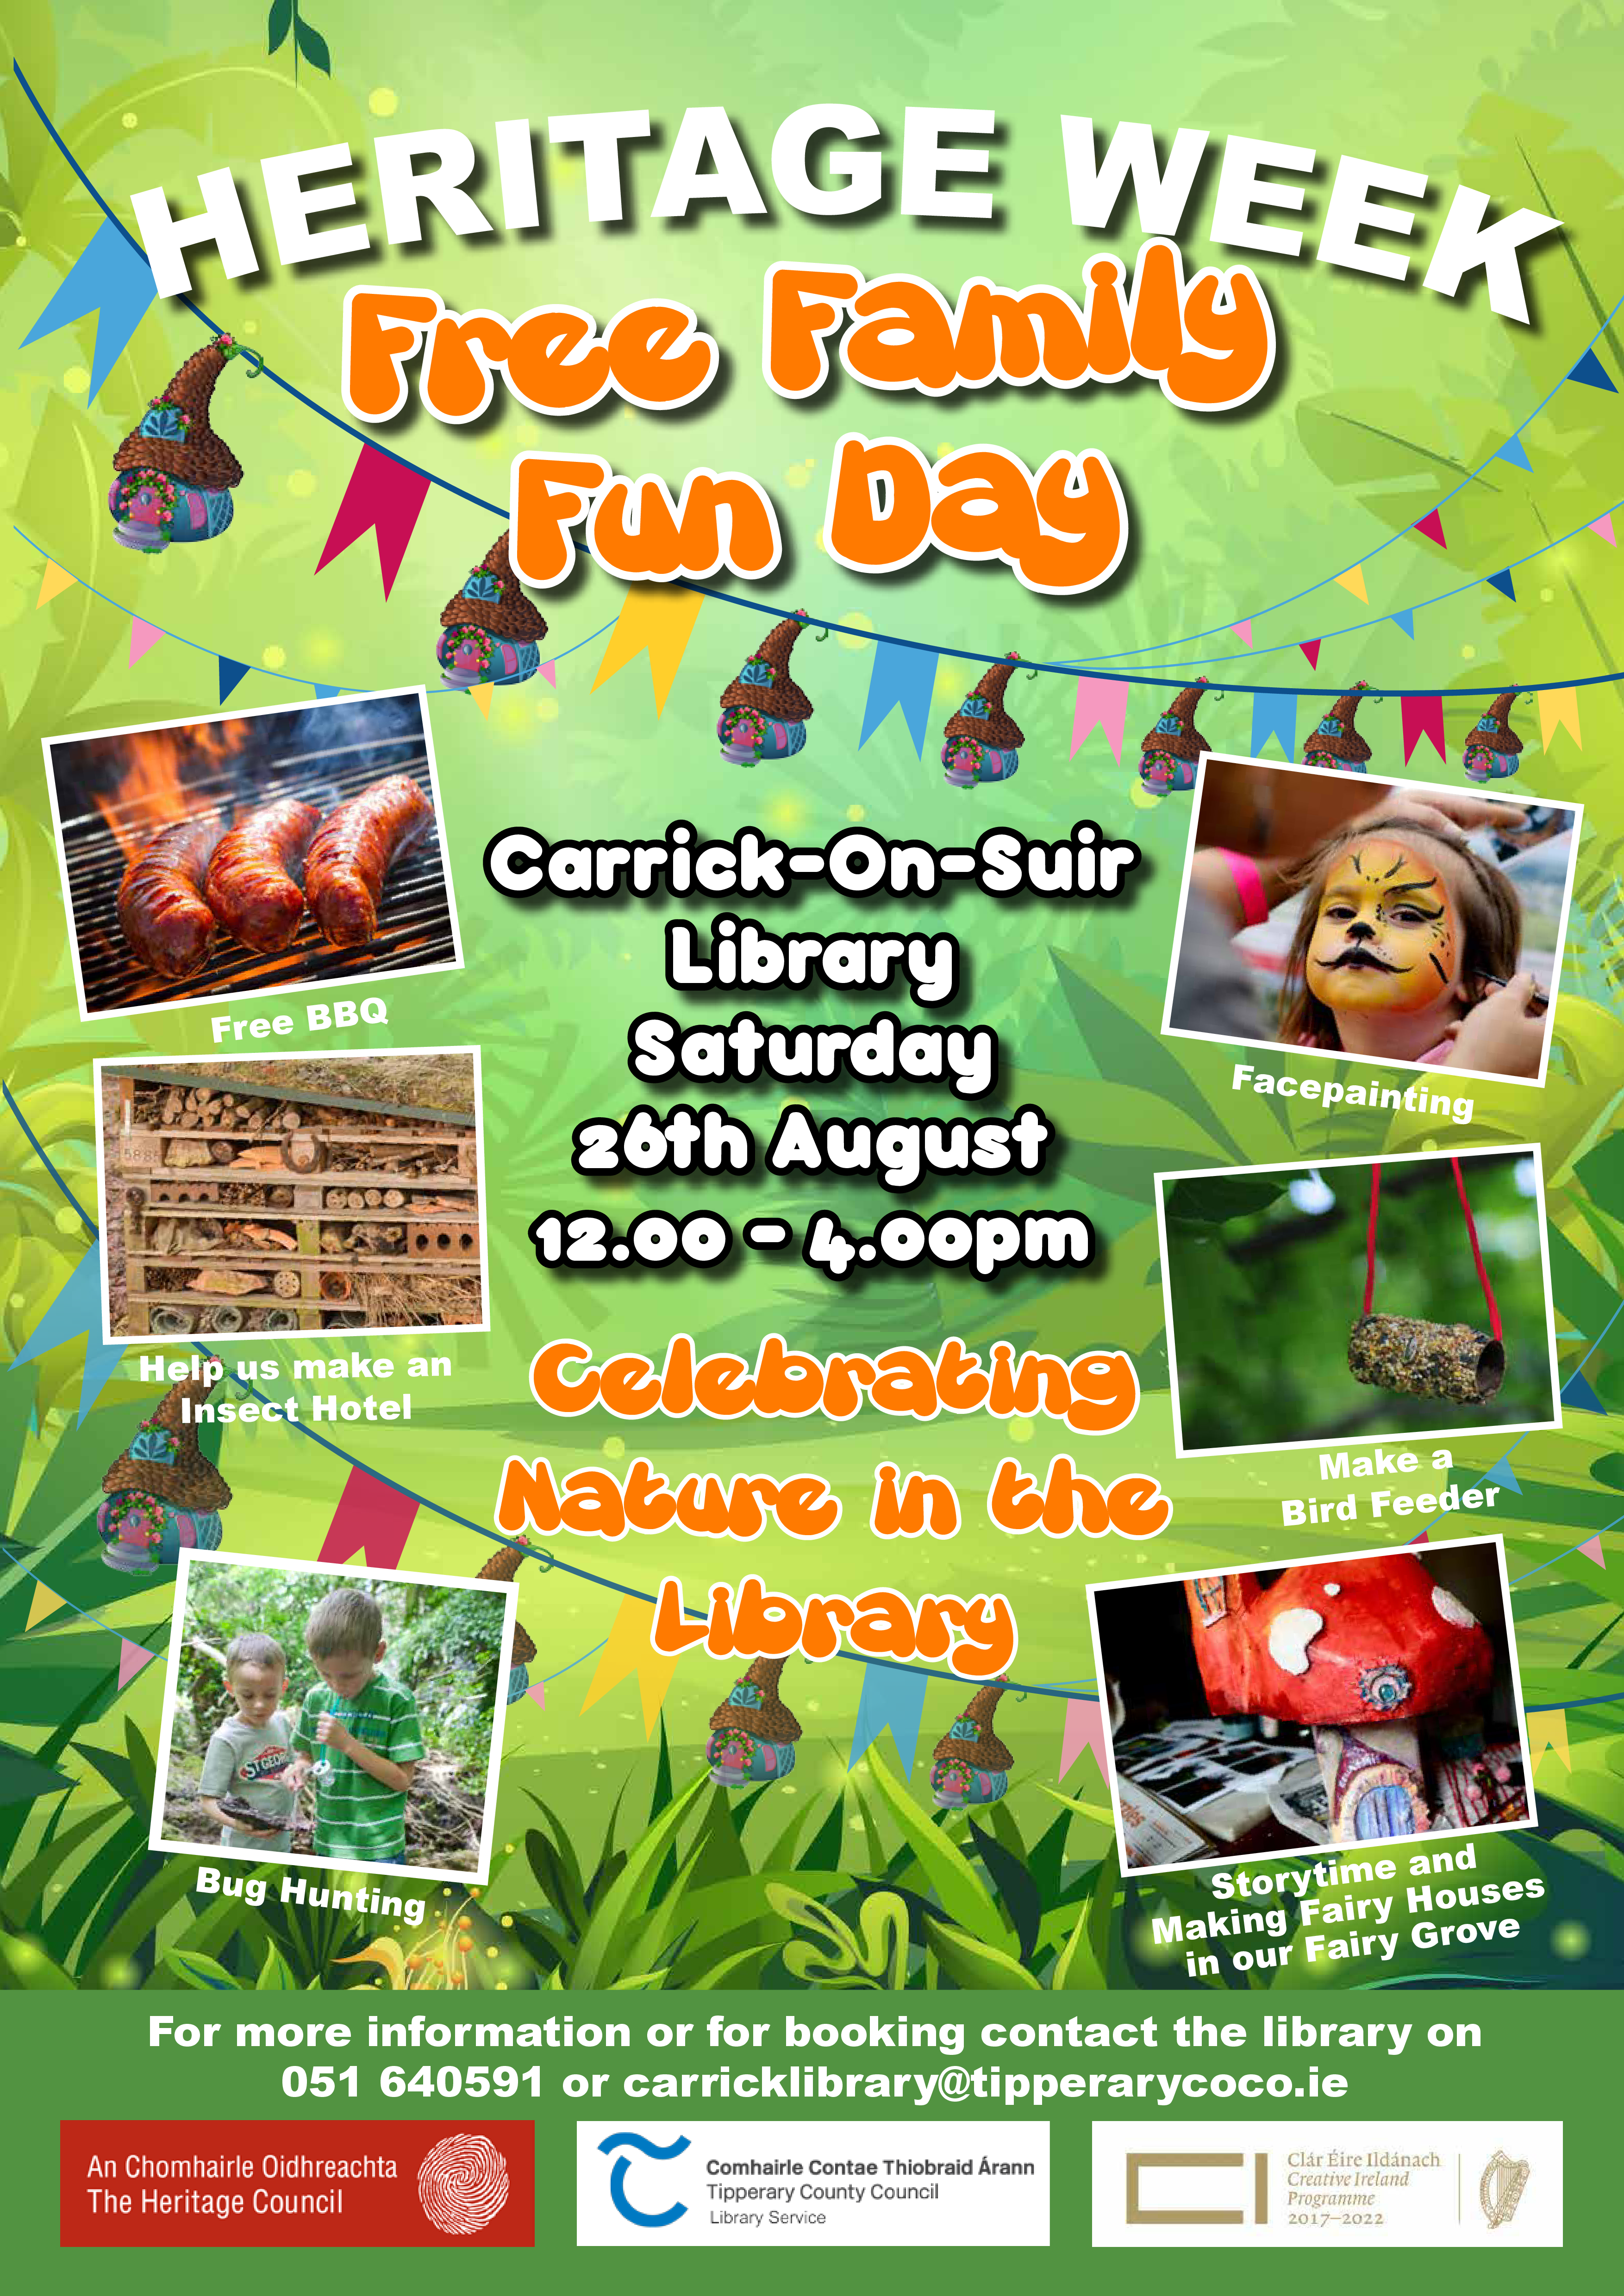 Carrick-on-Suir Library: Family Fun Day Sat 26th August